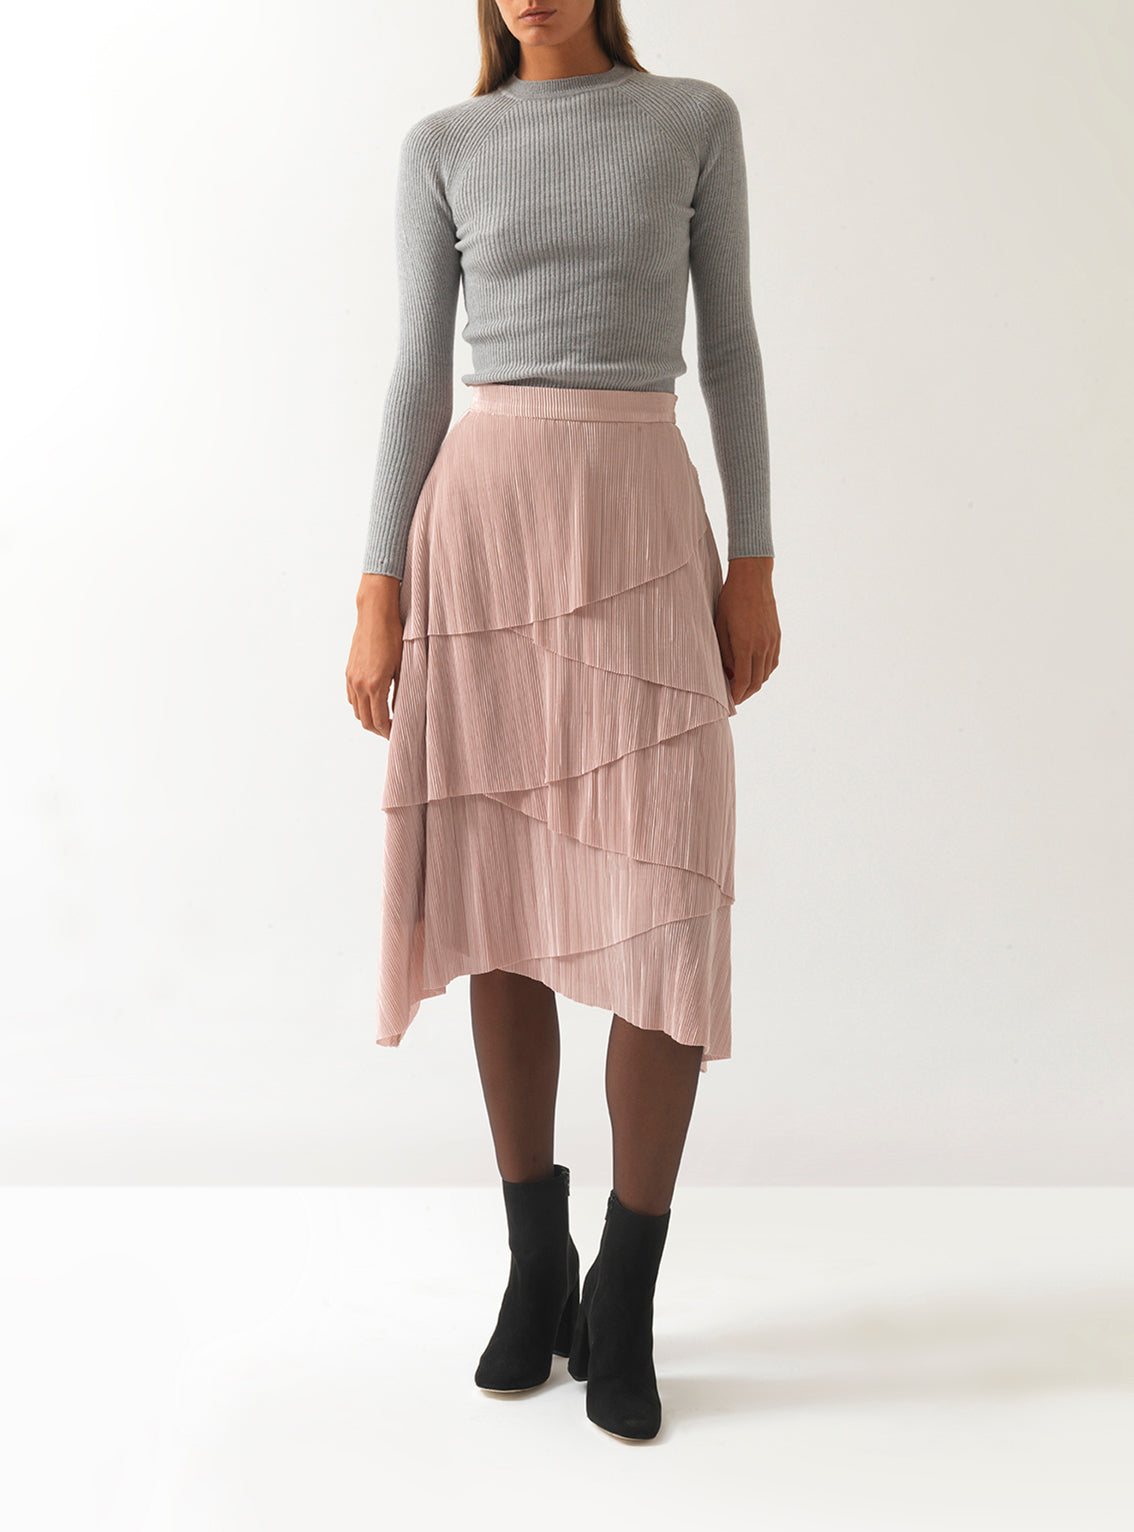 Midi skirt - Isabelle Fox